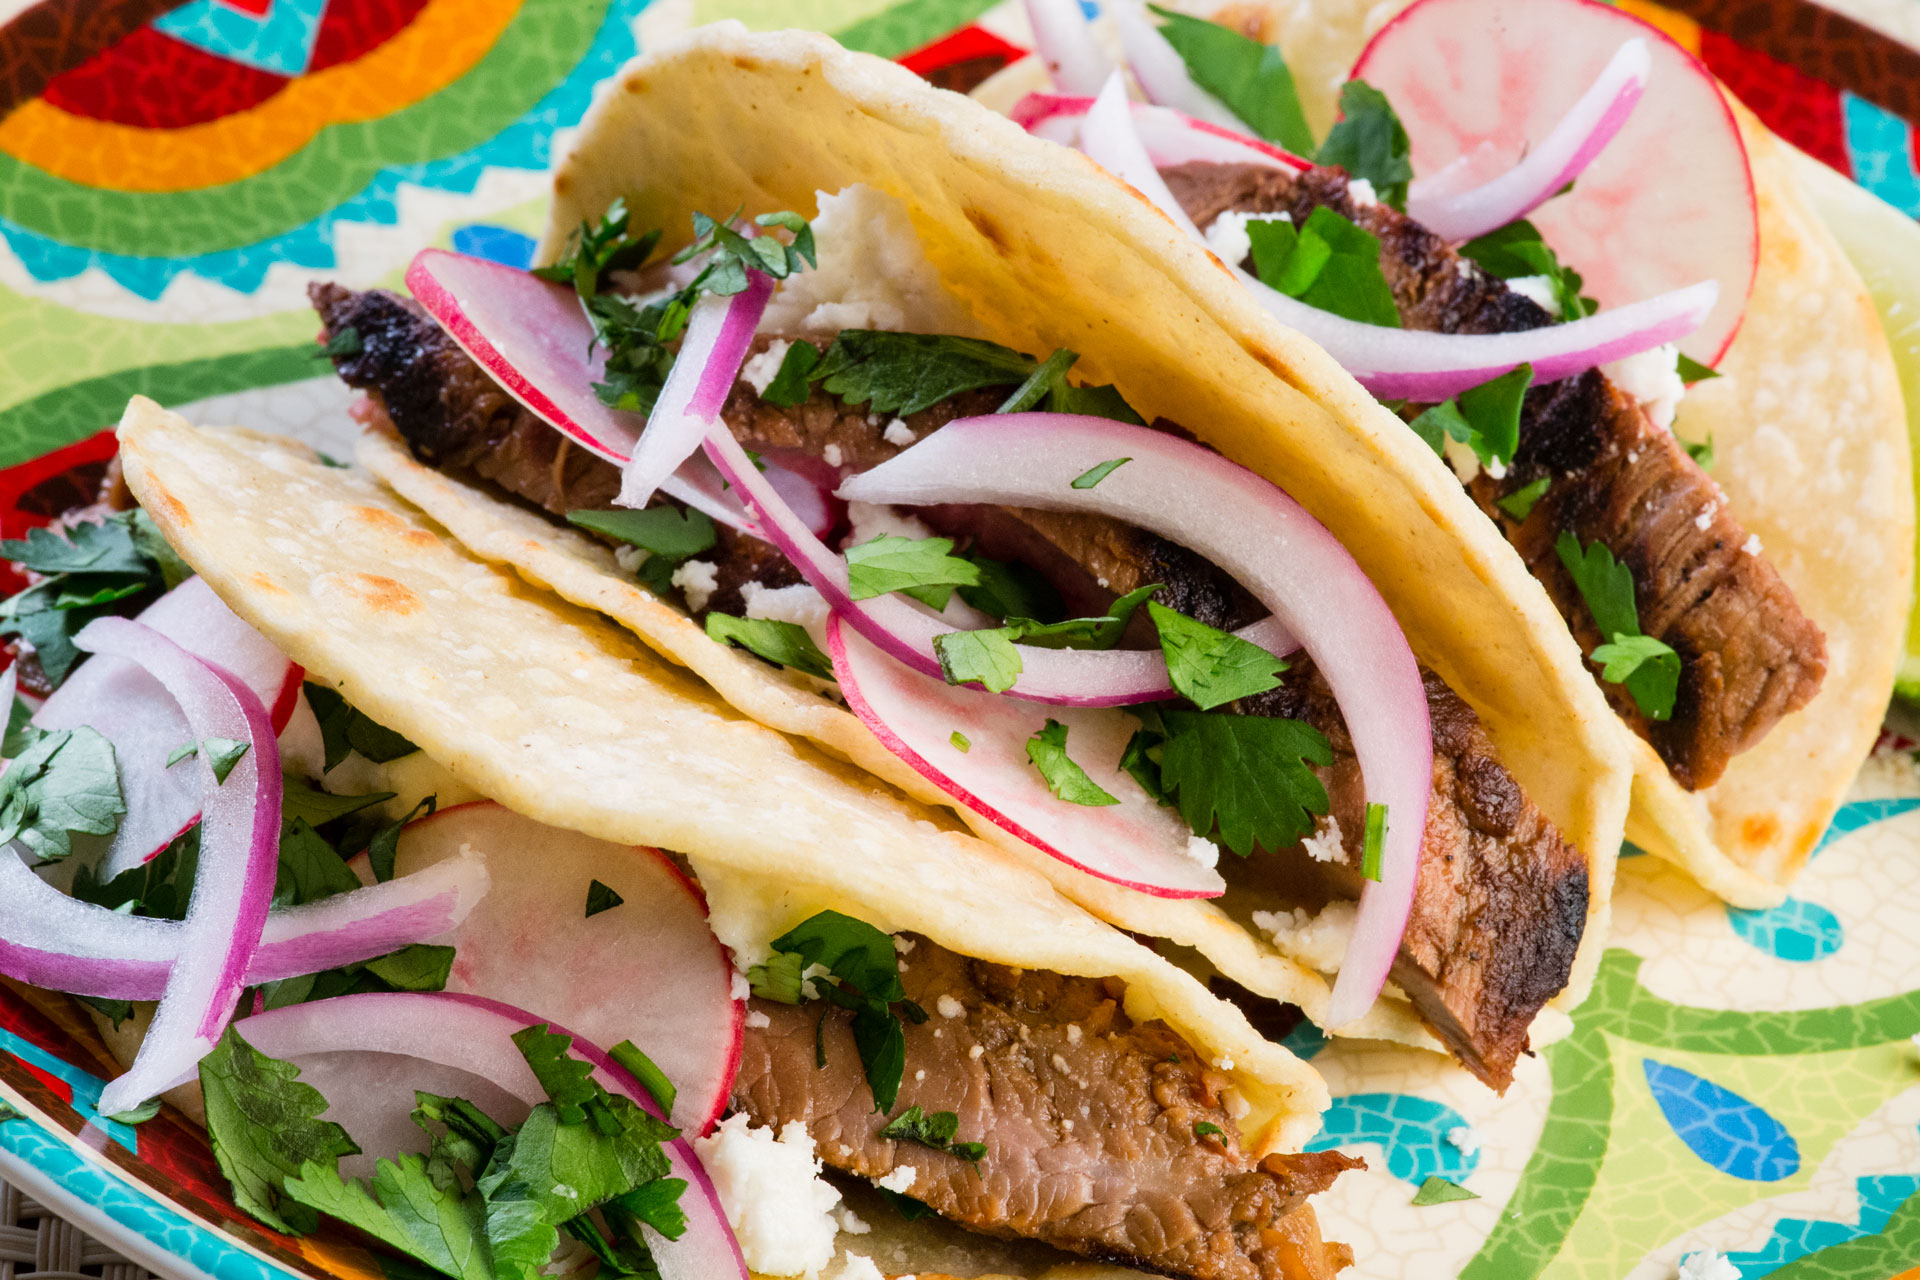 """Street"" tacos—small, portable and handheld—what's not to like? With flavor influences from beer, orange juice, and fresh lime, each mouthful is a delightful experience!"